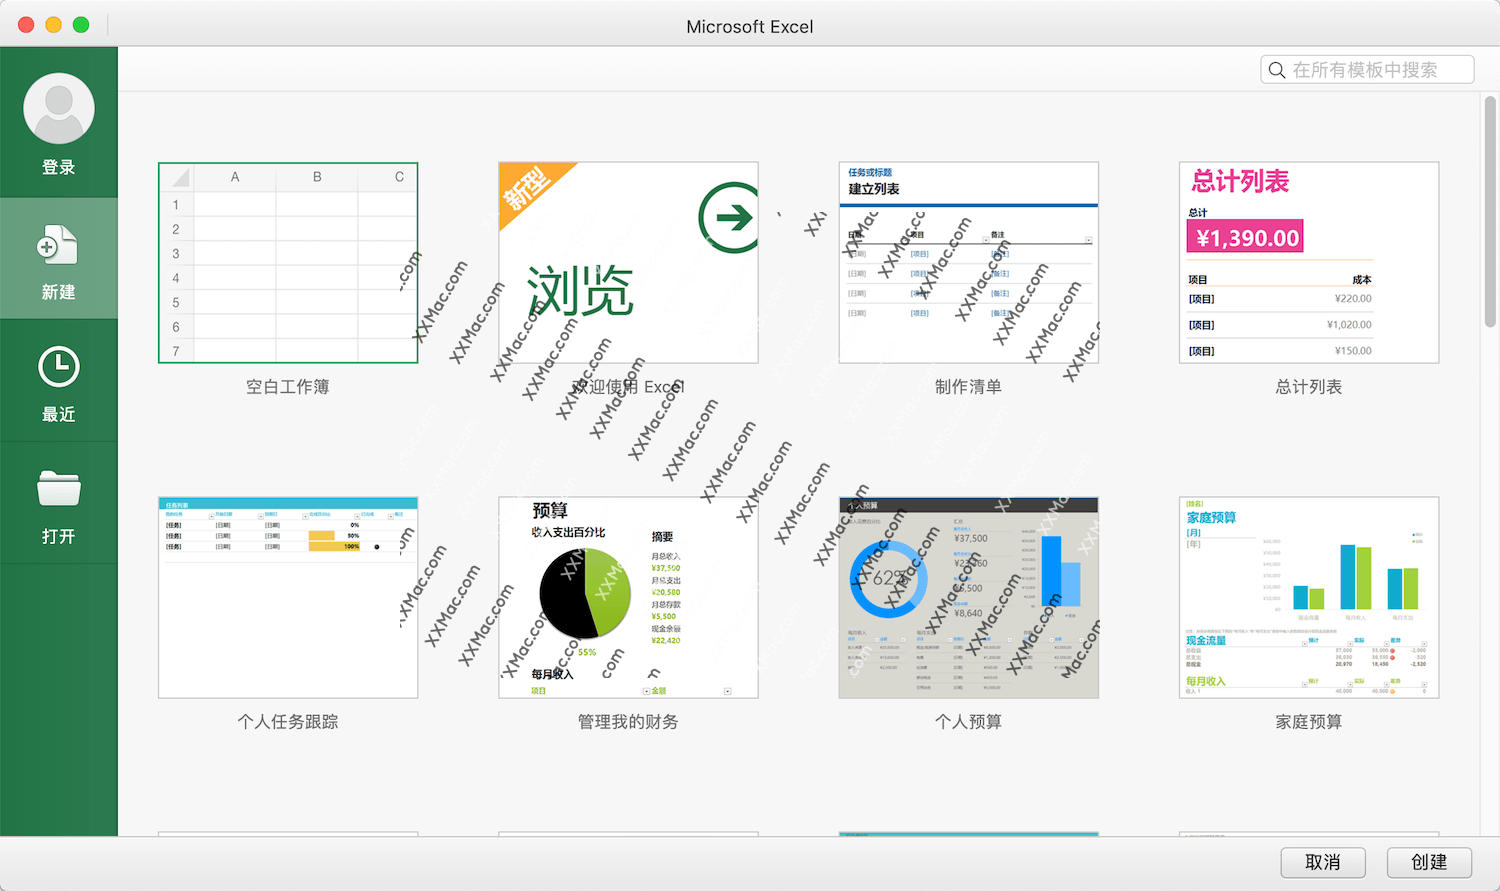 Office 2016 for Mac v16.16.8 中文破解版下载 Office办公软件